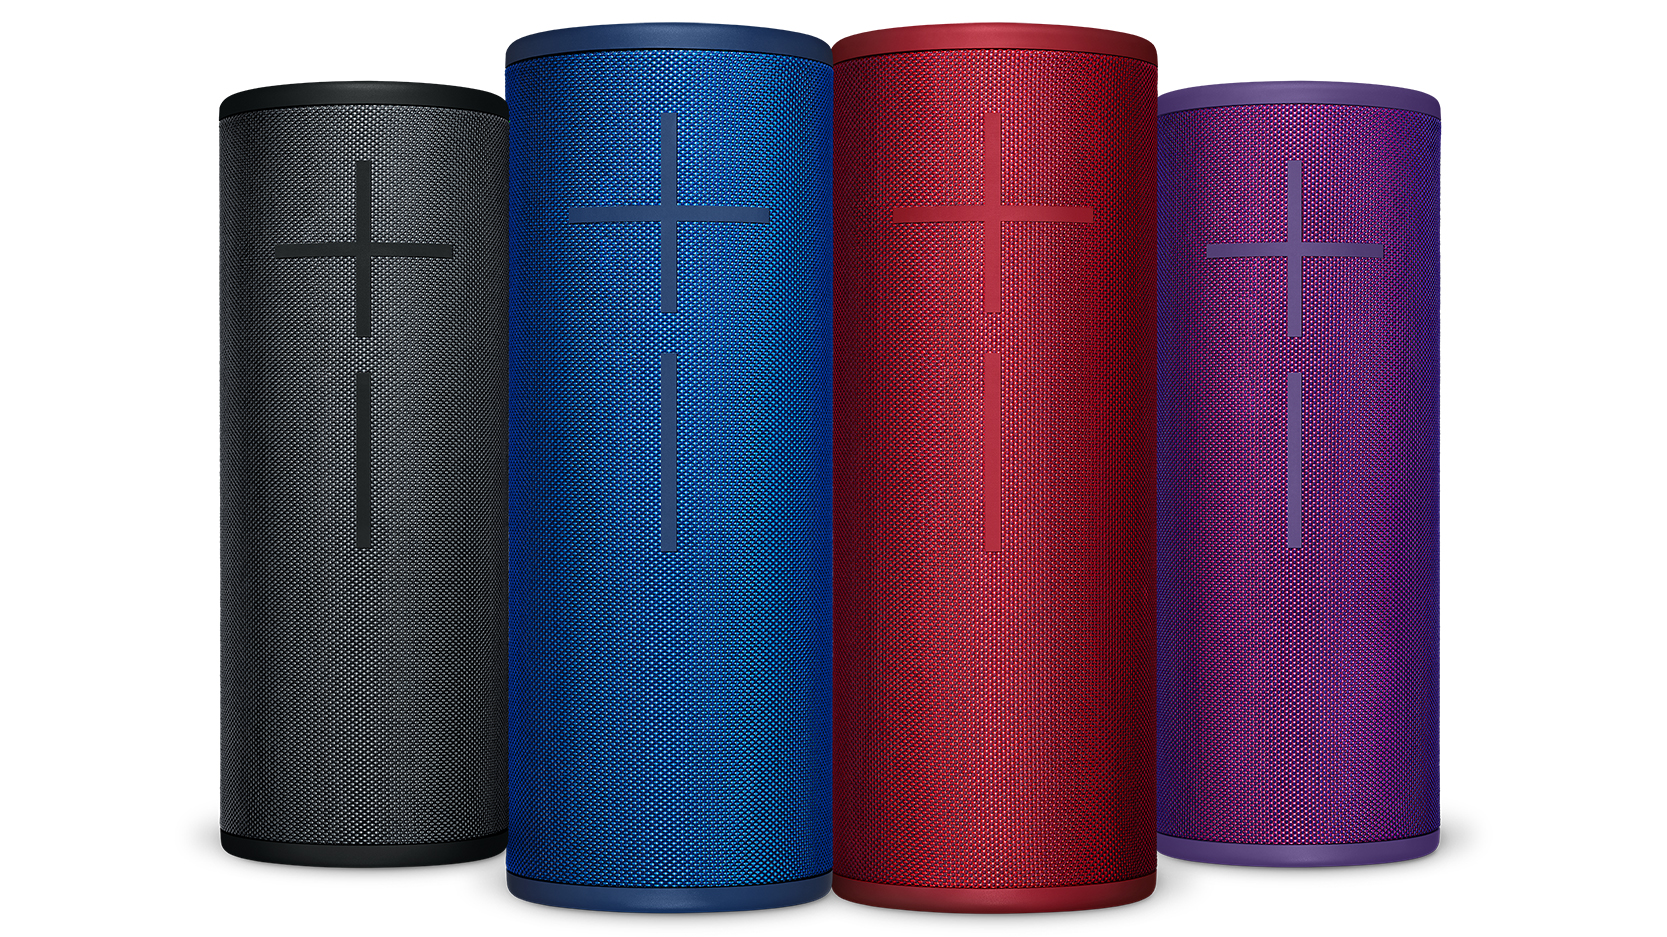 Ultimate Ears Boom 3 Bluetooth speaker is now available in